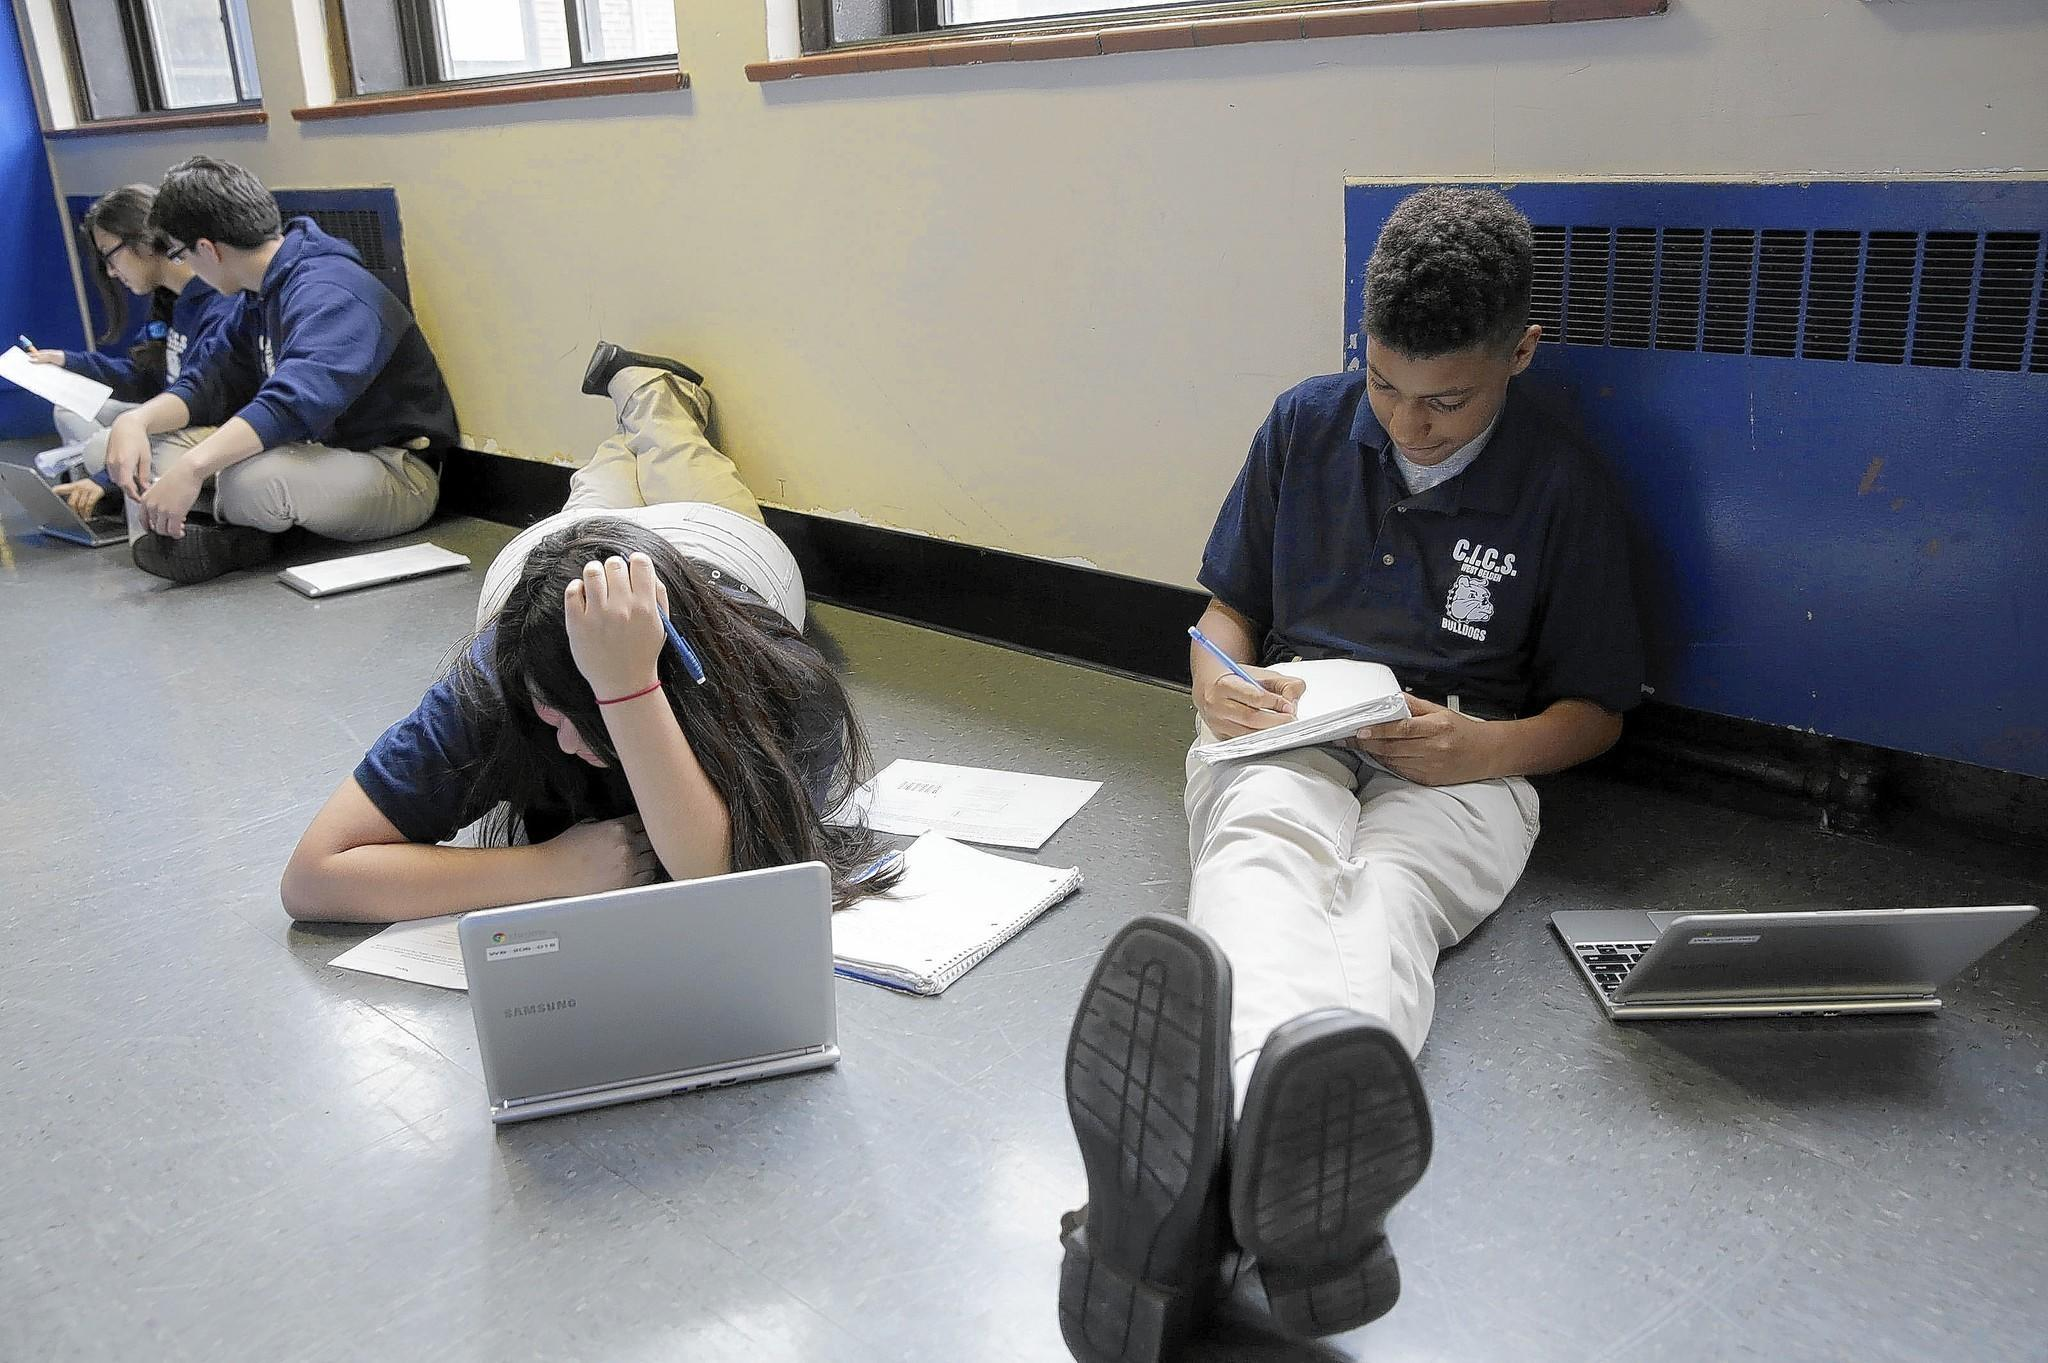 Lizbeth Mendez, 13, and Thomas Brooks, 12, study at CICS West Belden charter school. Common Core standards may aid student success.